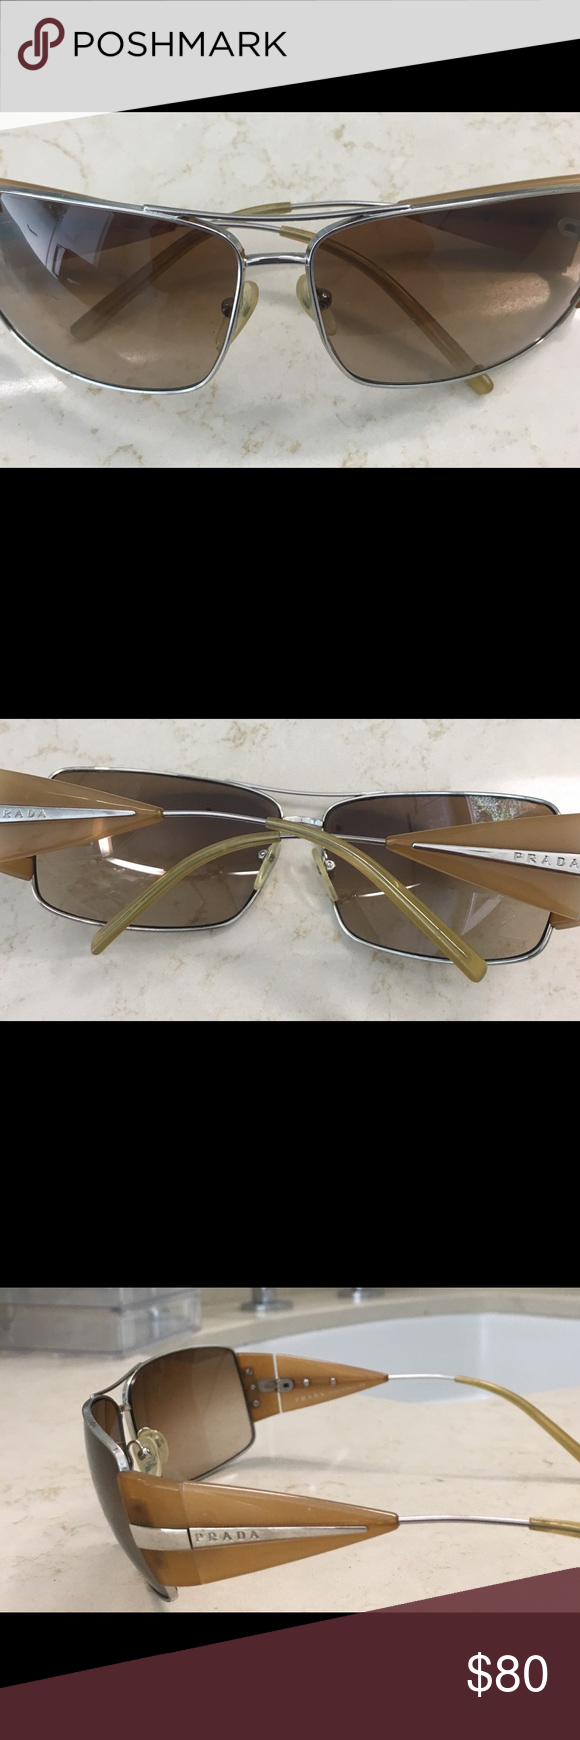 3832e30c02 Prada sunglasses SPR 63 12 120 Authentic Prada Sunglasses SPR 55H 63 12 120